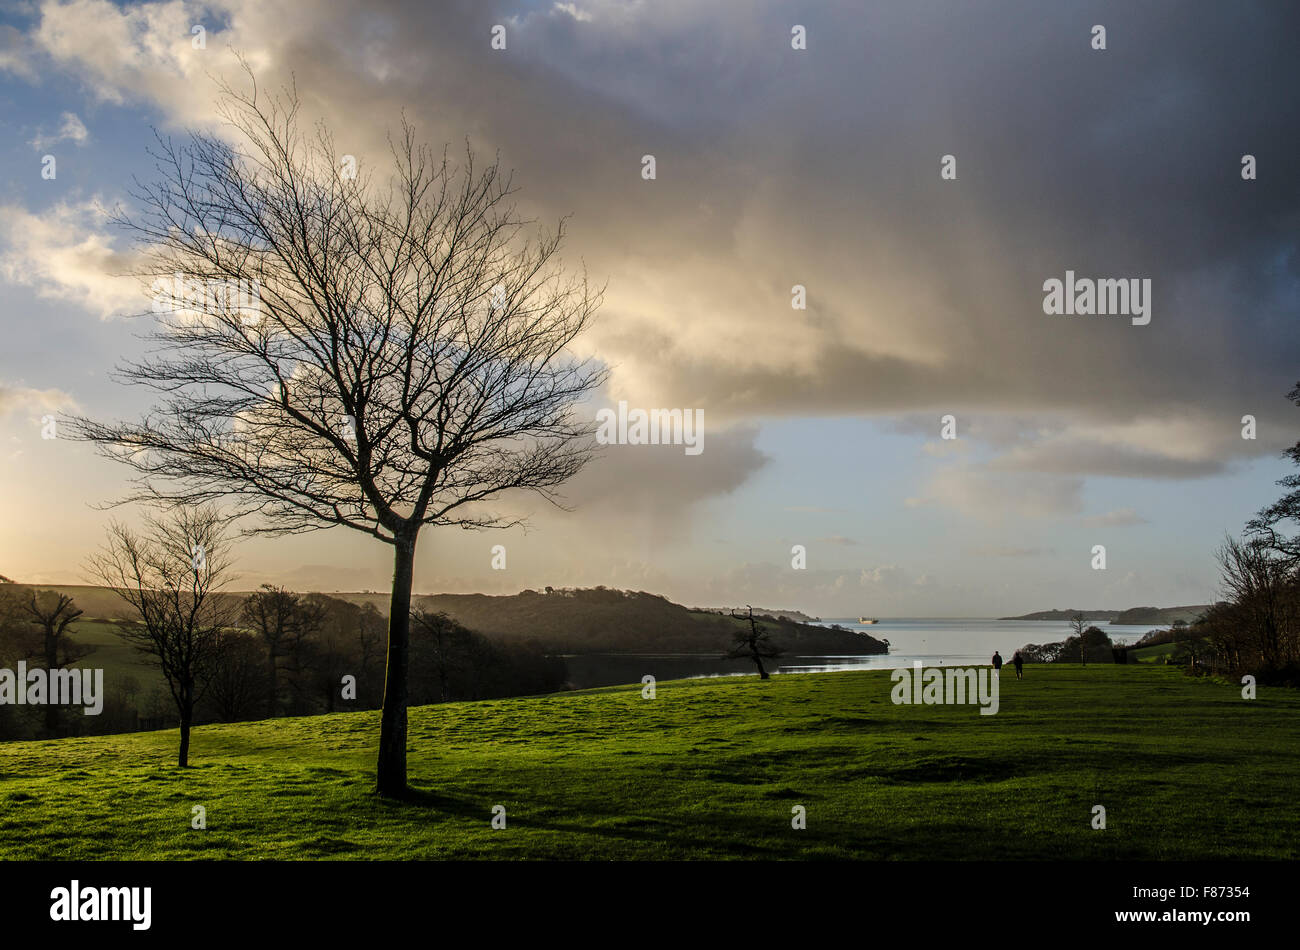 Looking towards the Carrick roads on the river fal in Cornwall, England, UK - Stock Image